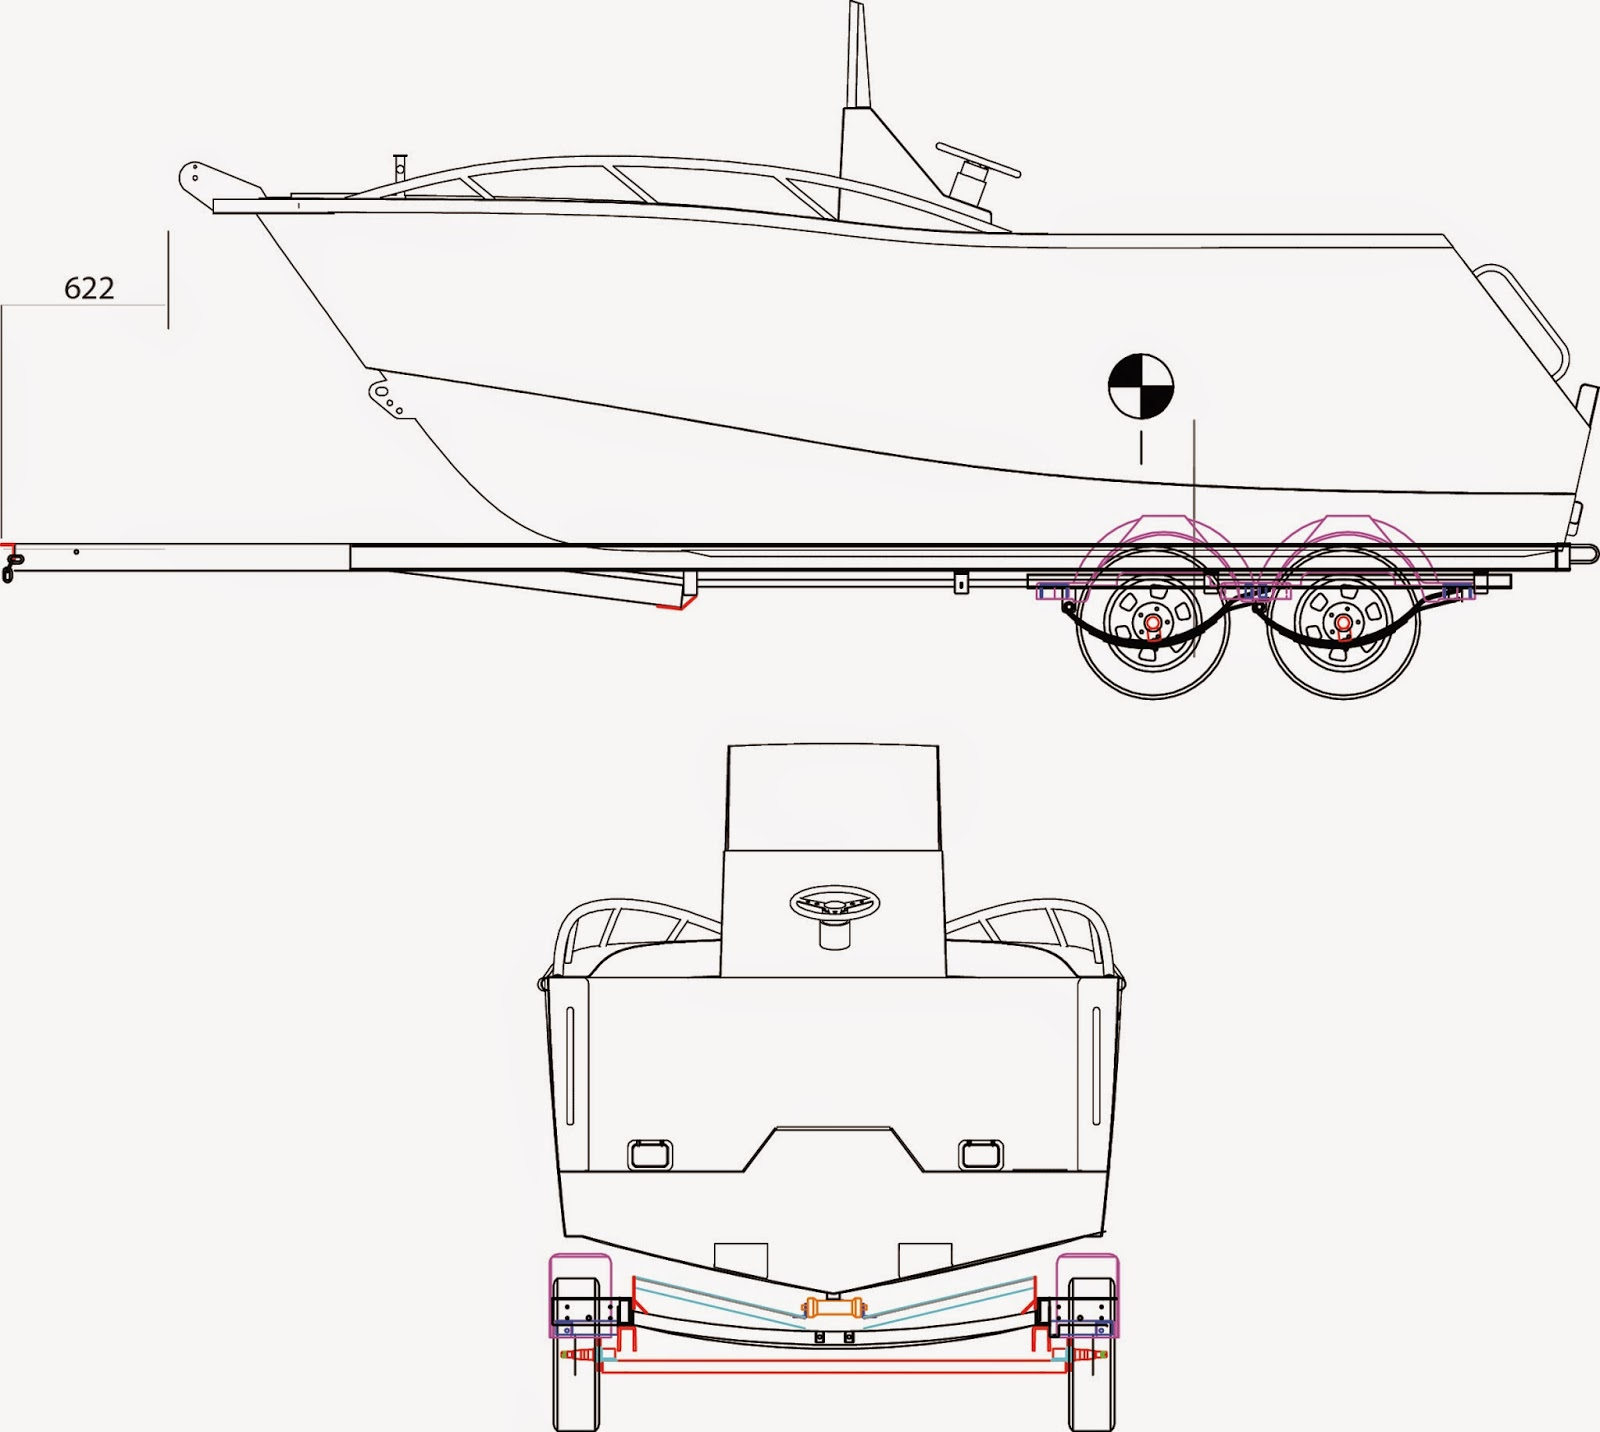 CNC Marine 5m (5.75 Overall) Plate Boat Build: September 2014